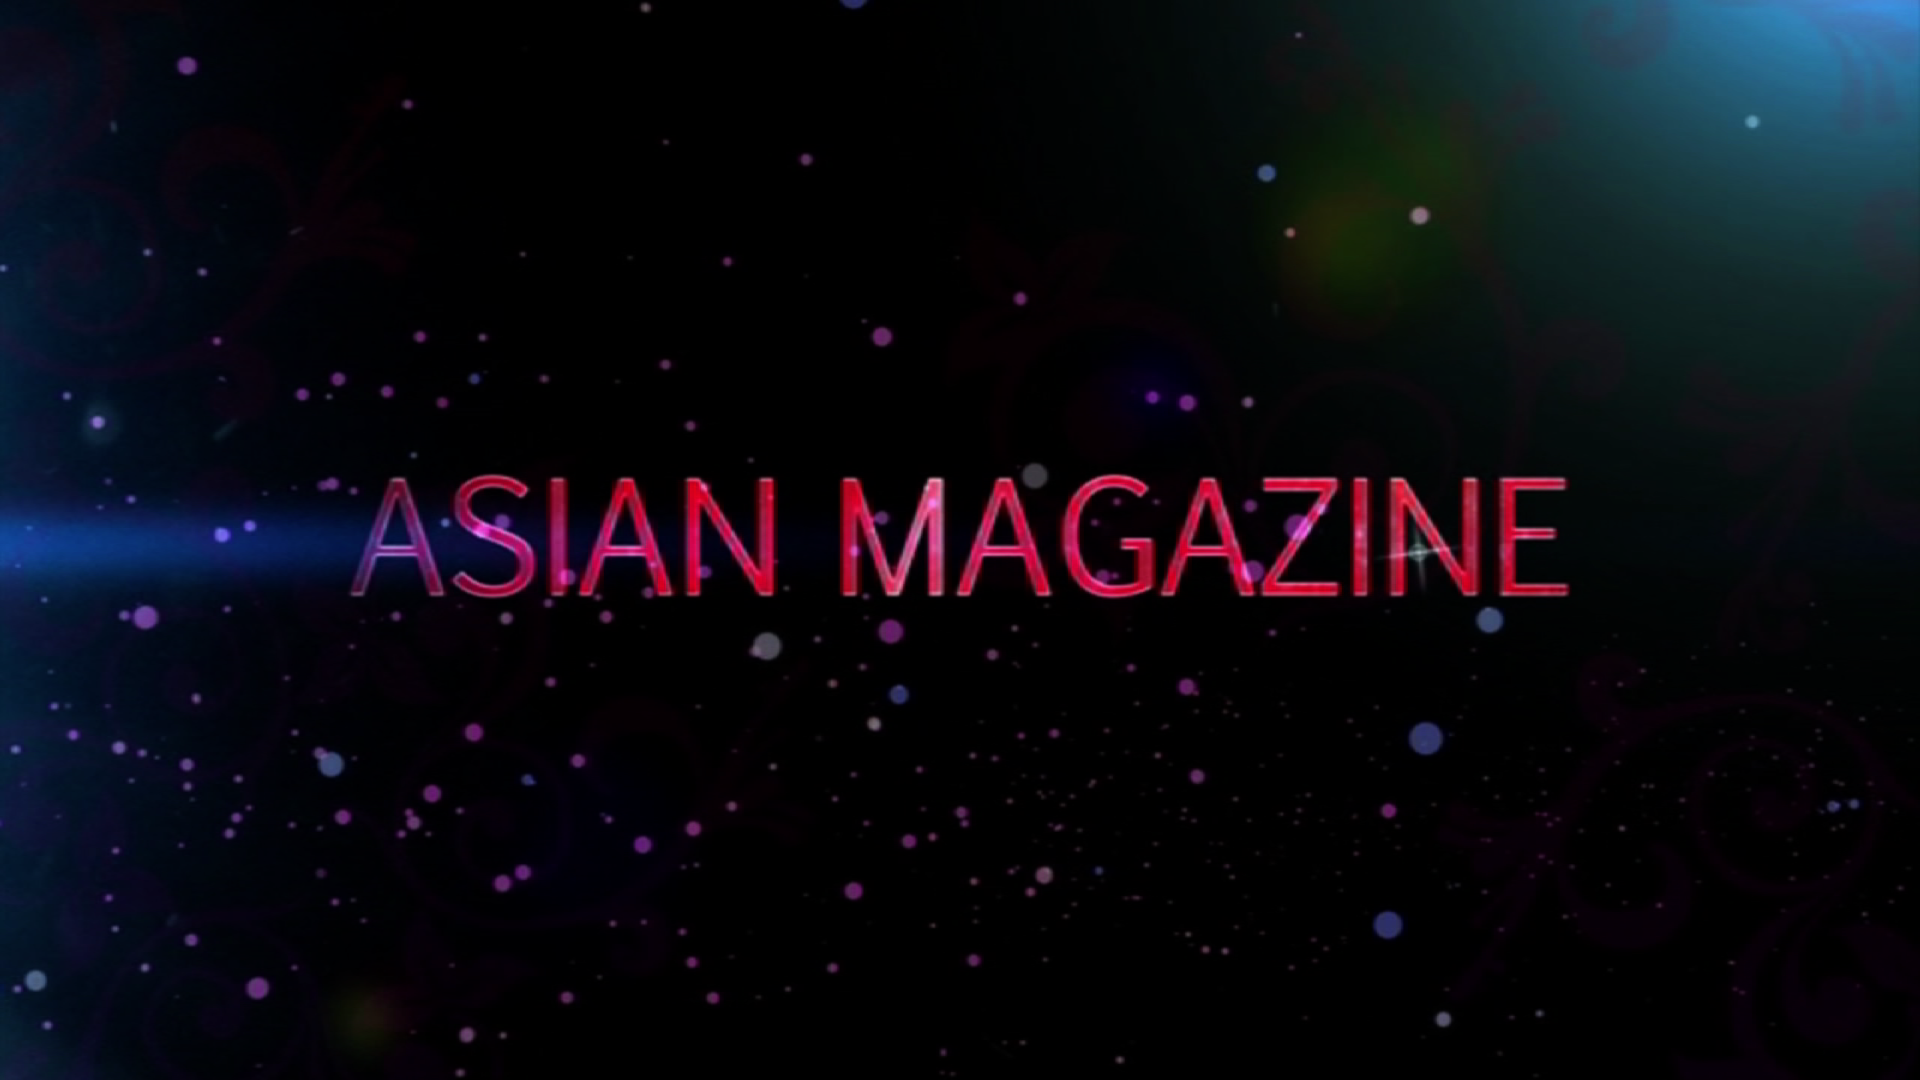 ASIAN MAGAZINE.png